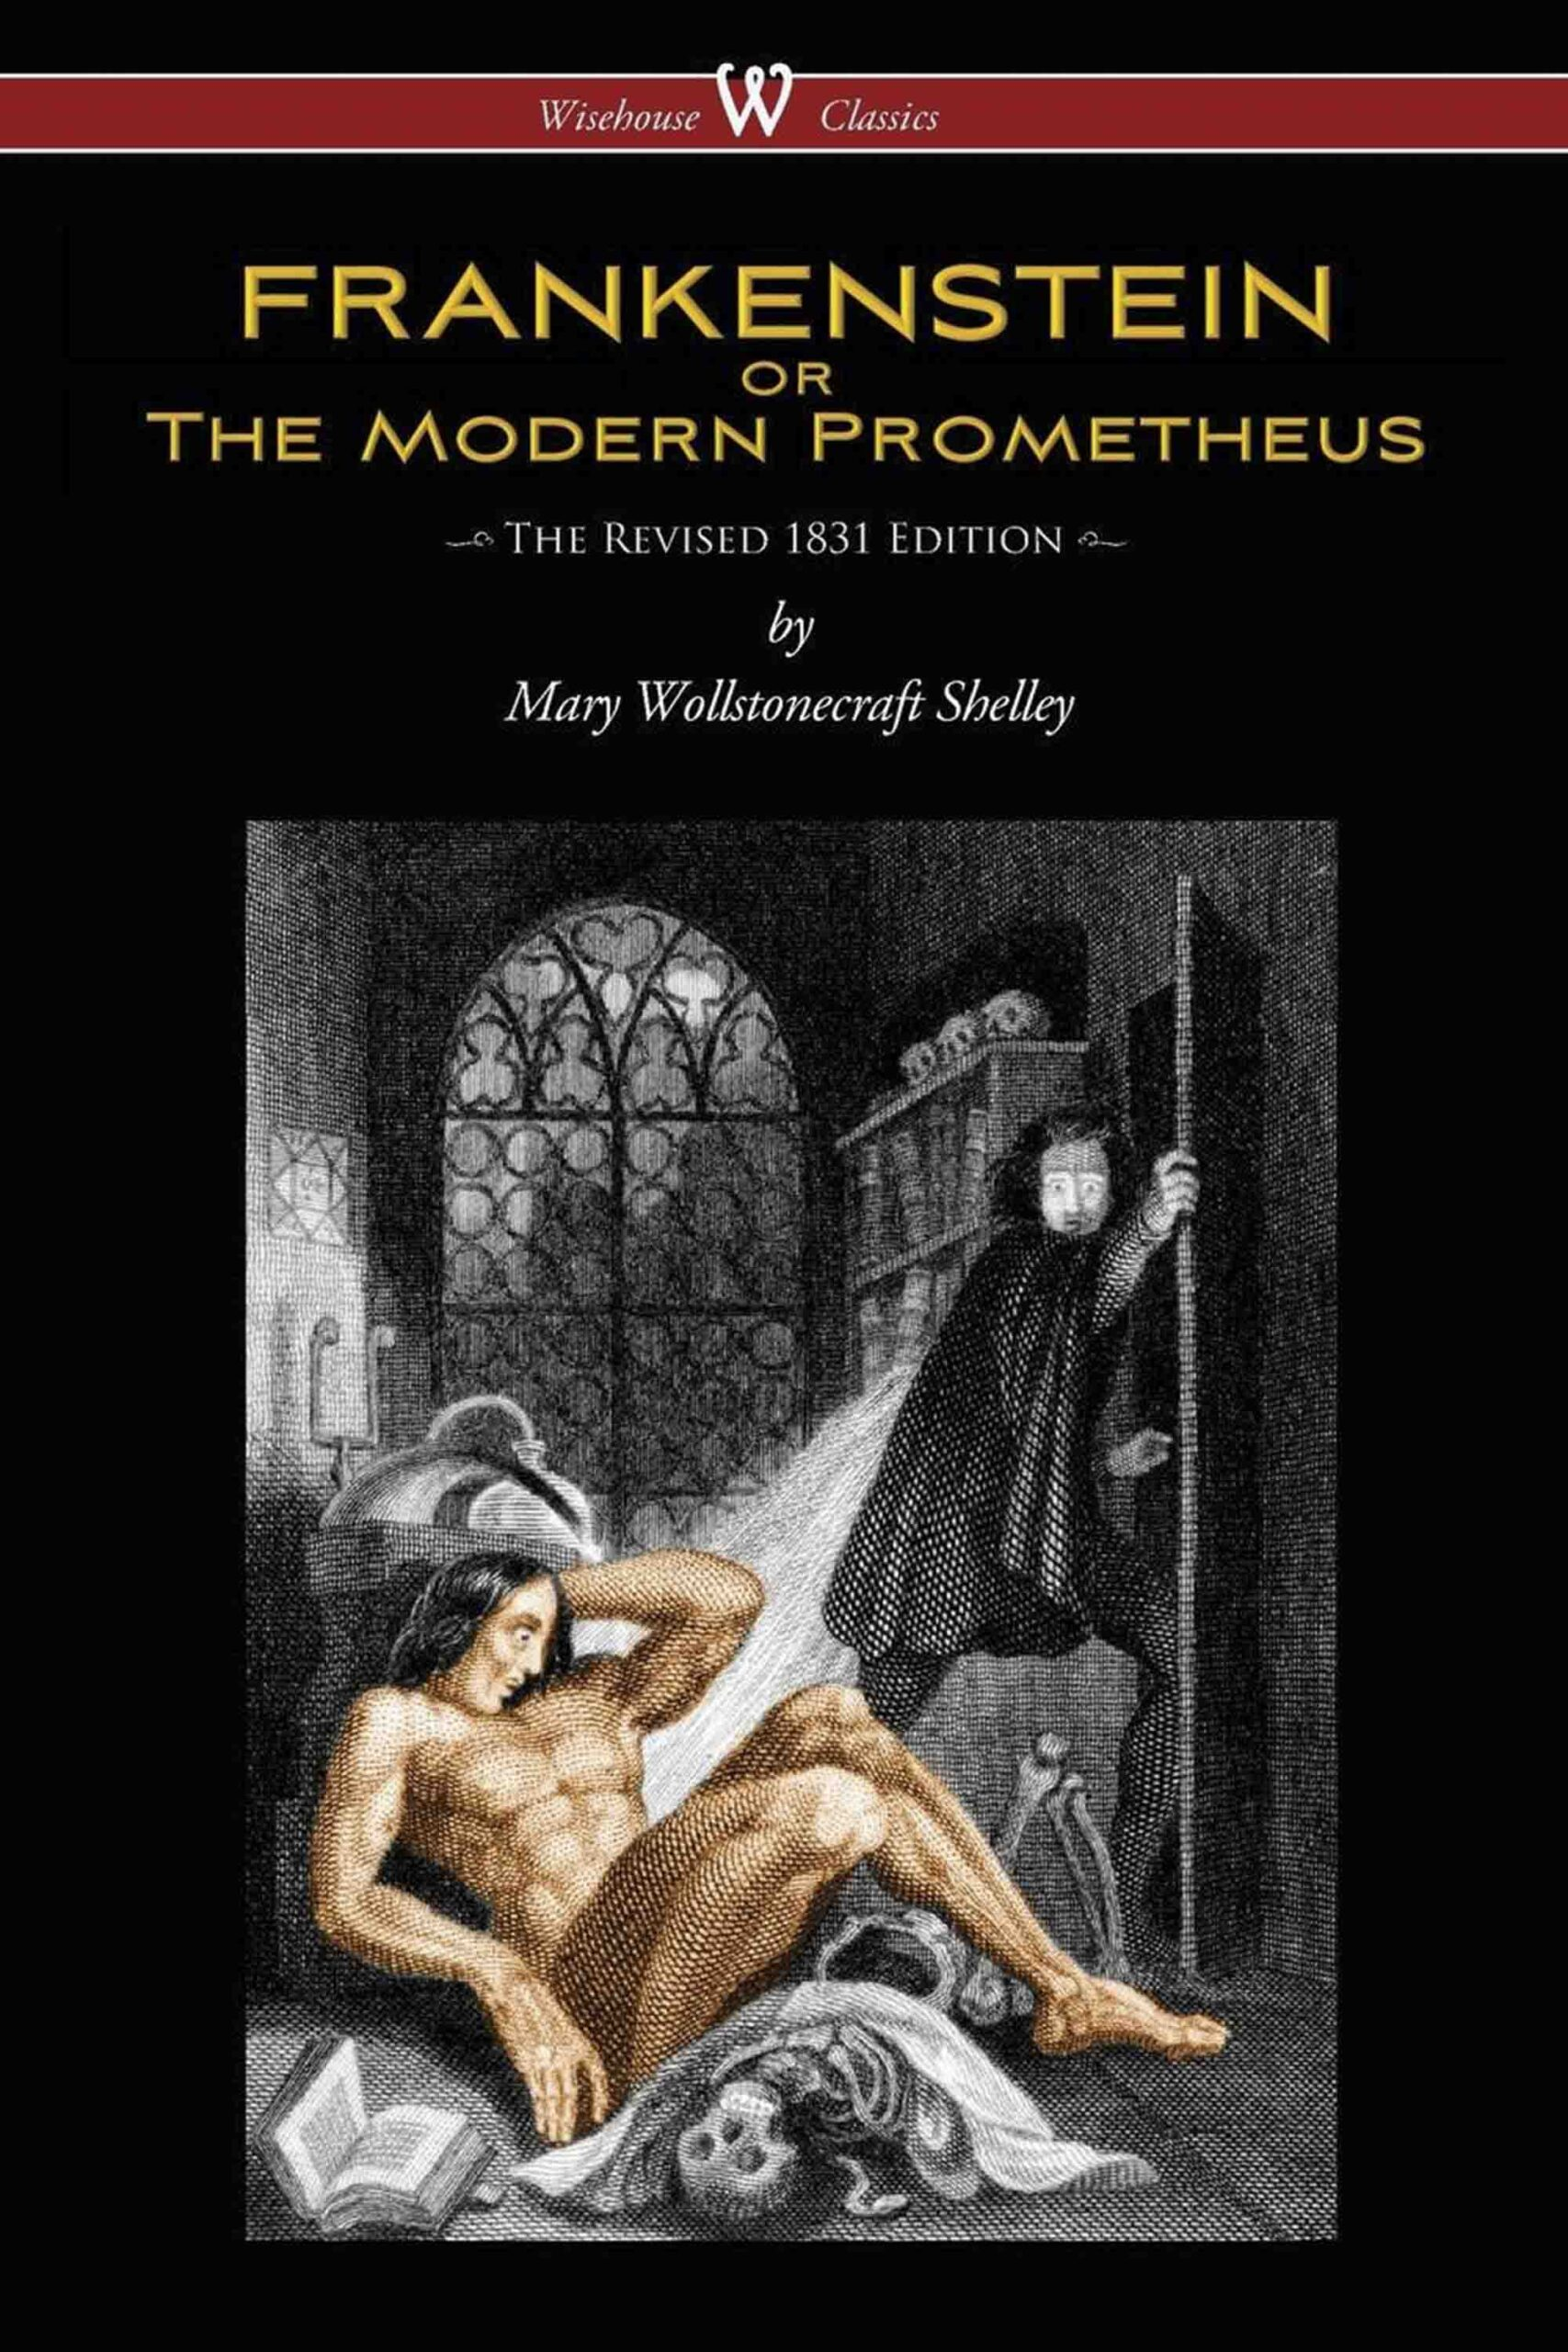 FRANKENSTEIN or The Modern Prometheus (The Revised 1831 Edition – Wisehouse Classics)